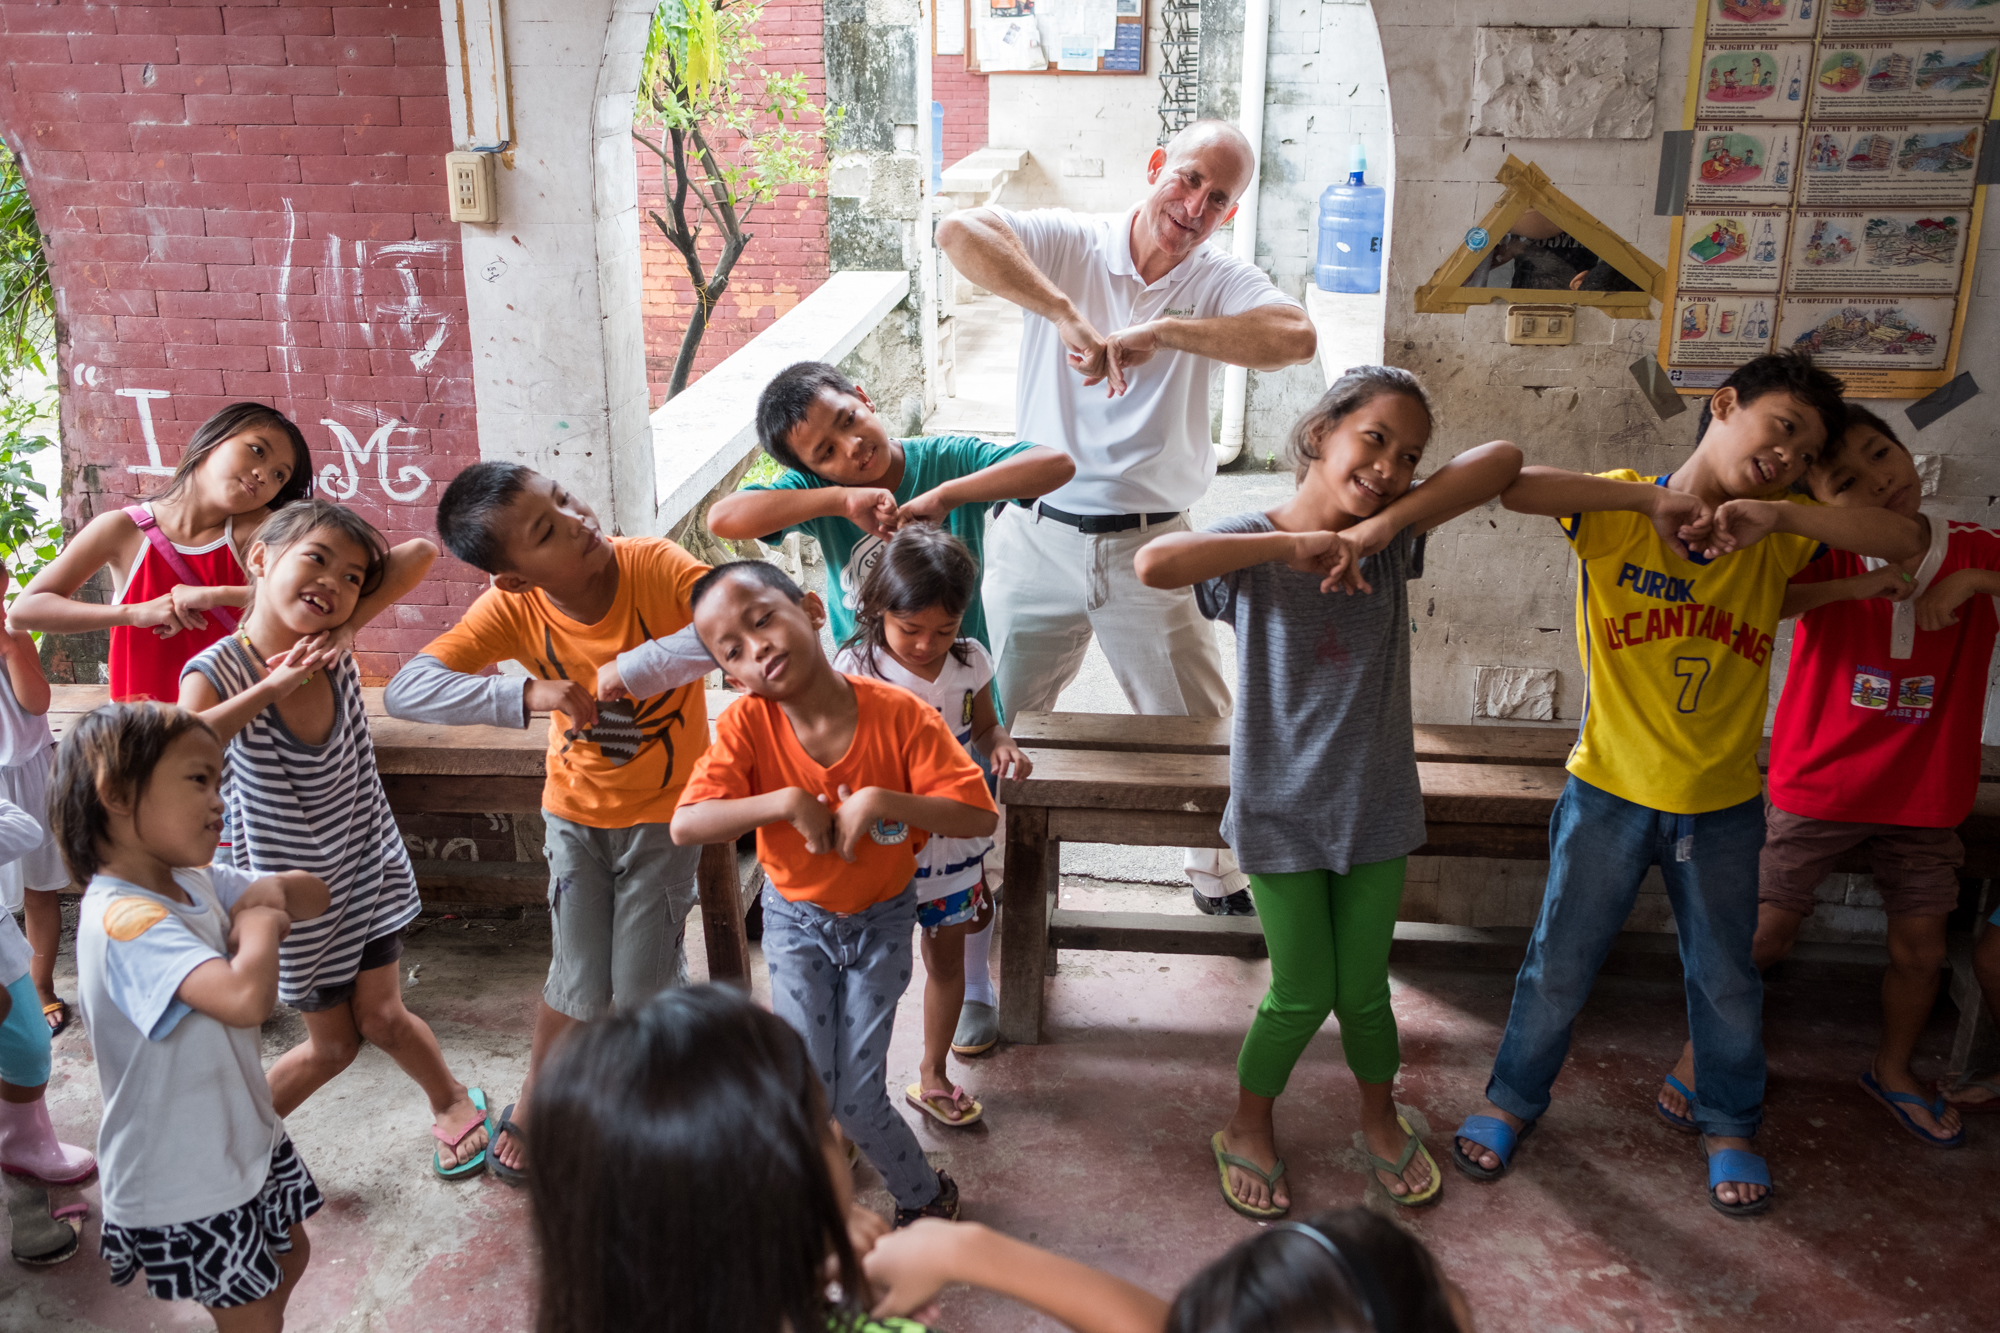 Frank Becker (back, center) dances with children during bible school at Living Bread Ministry in Cebu, Philippines. Frank instills faith-based exercises during the programs before offering school supplies and meals.